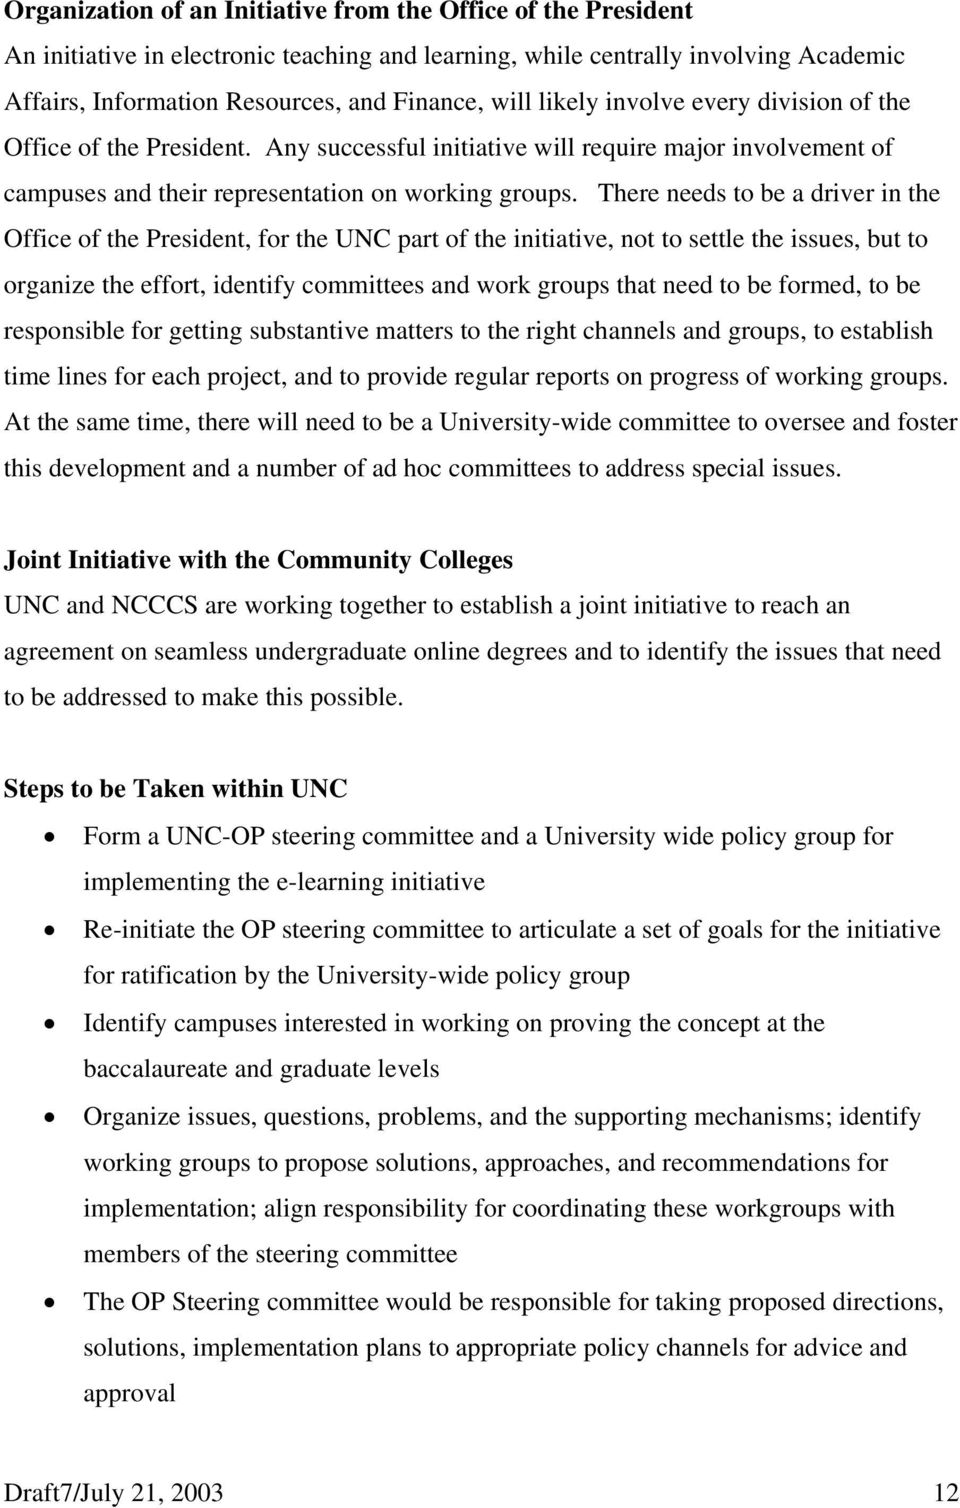 There needs to be a driver in the Office of the President, for the UNC part of the initiative, not to settle the issues, but to organize the effort, identify committees and work groups that need to